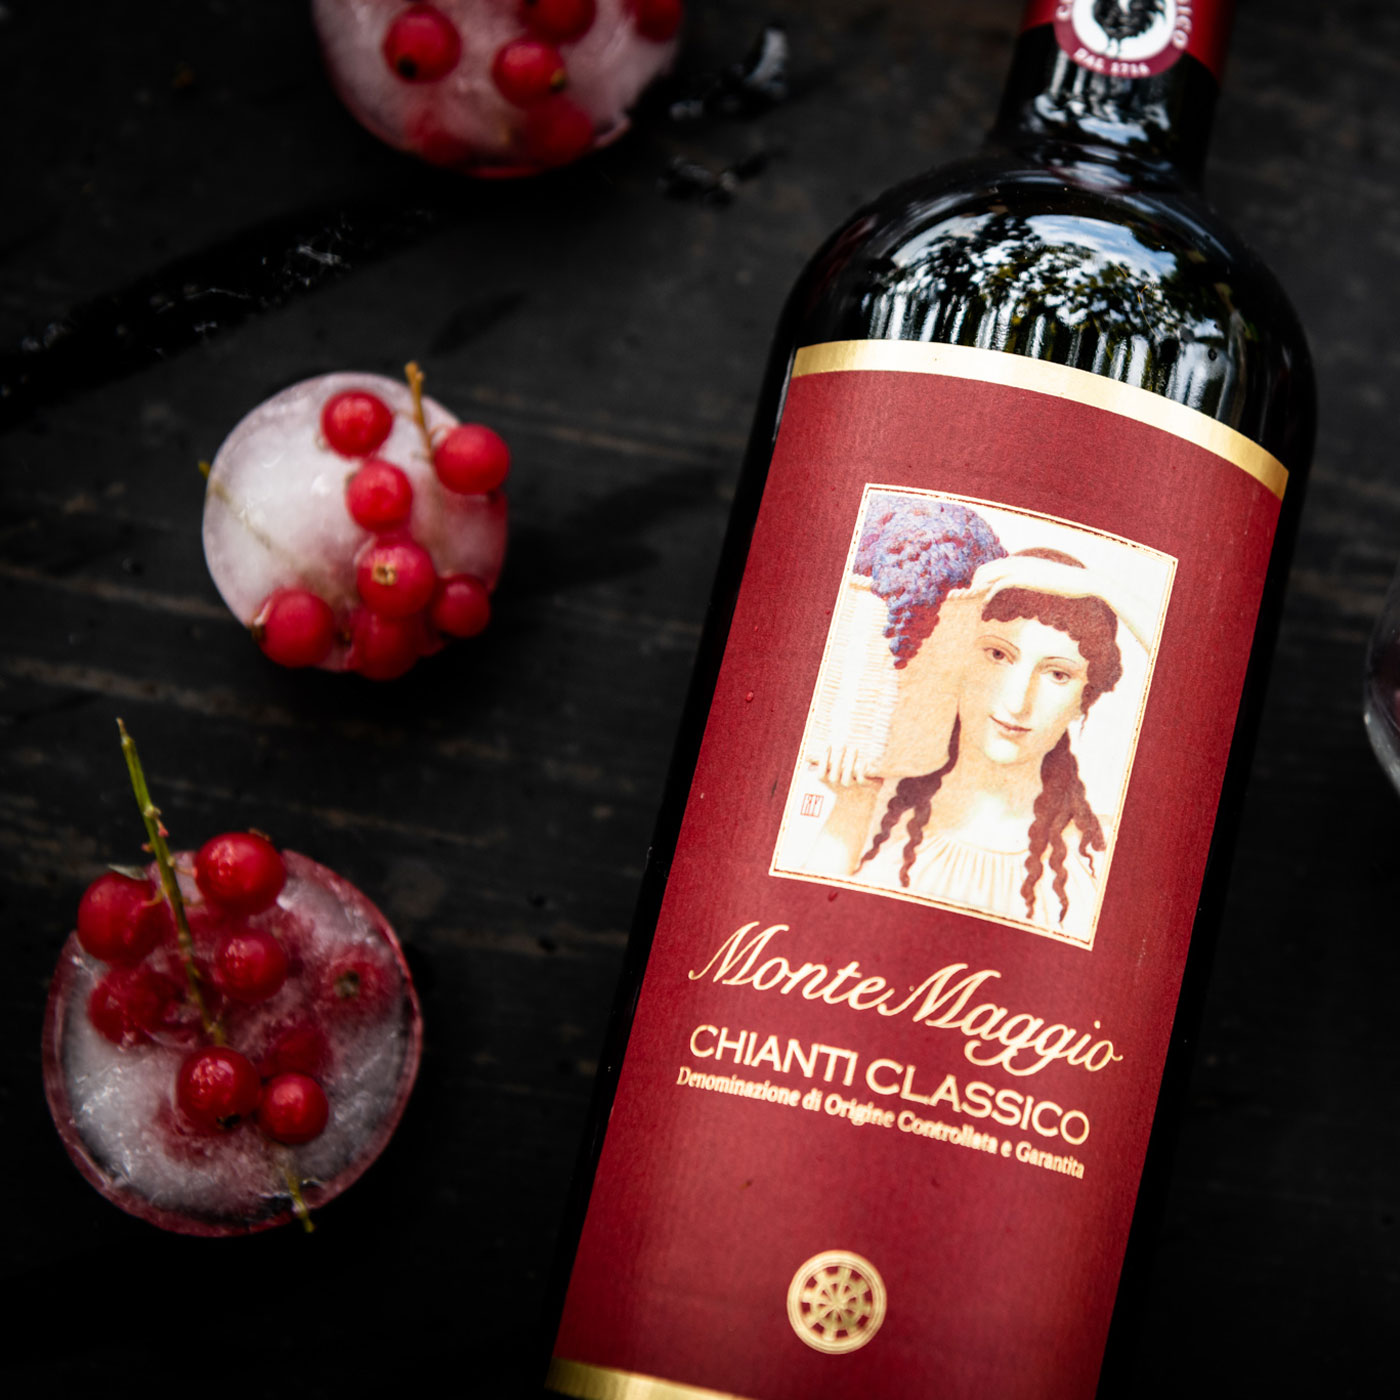 Enjoy Chianti Classico red wine from a Tuscany vineyard